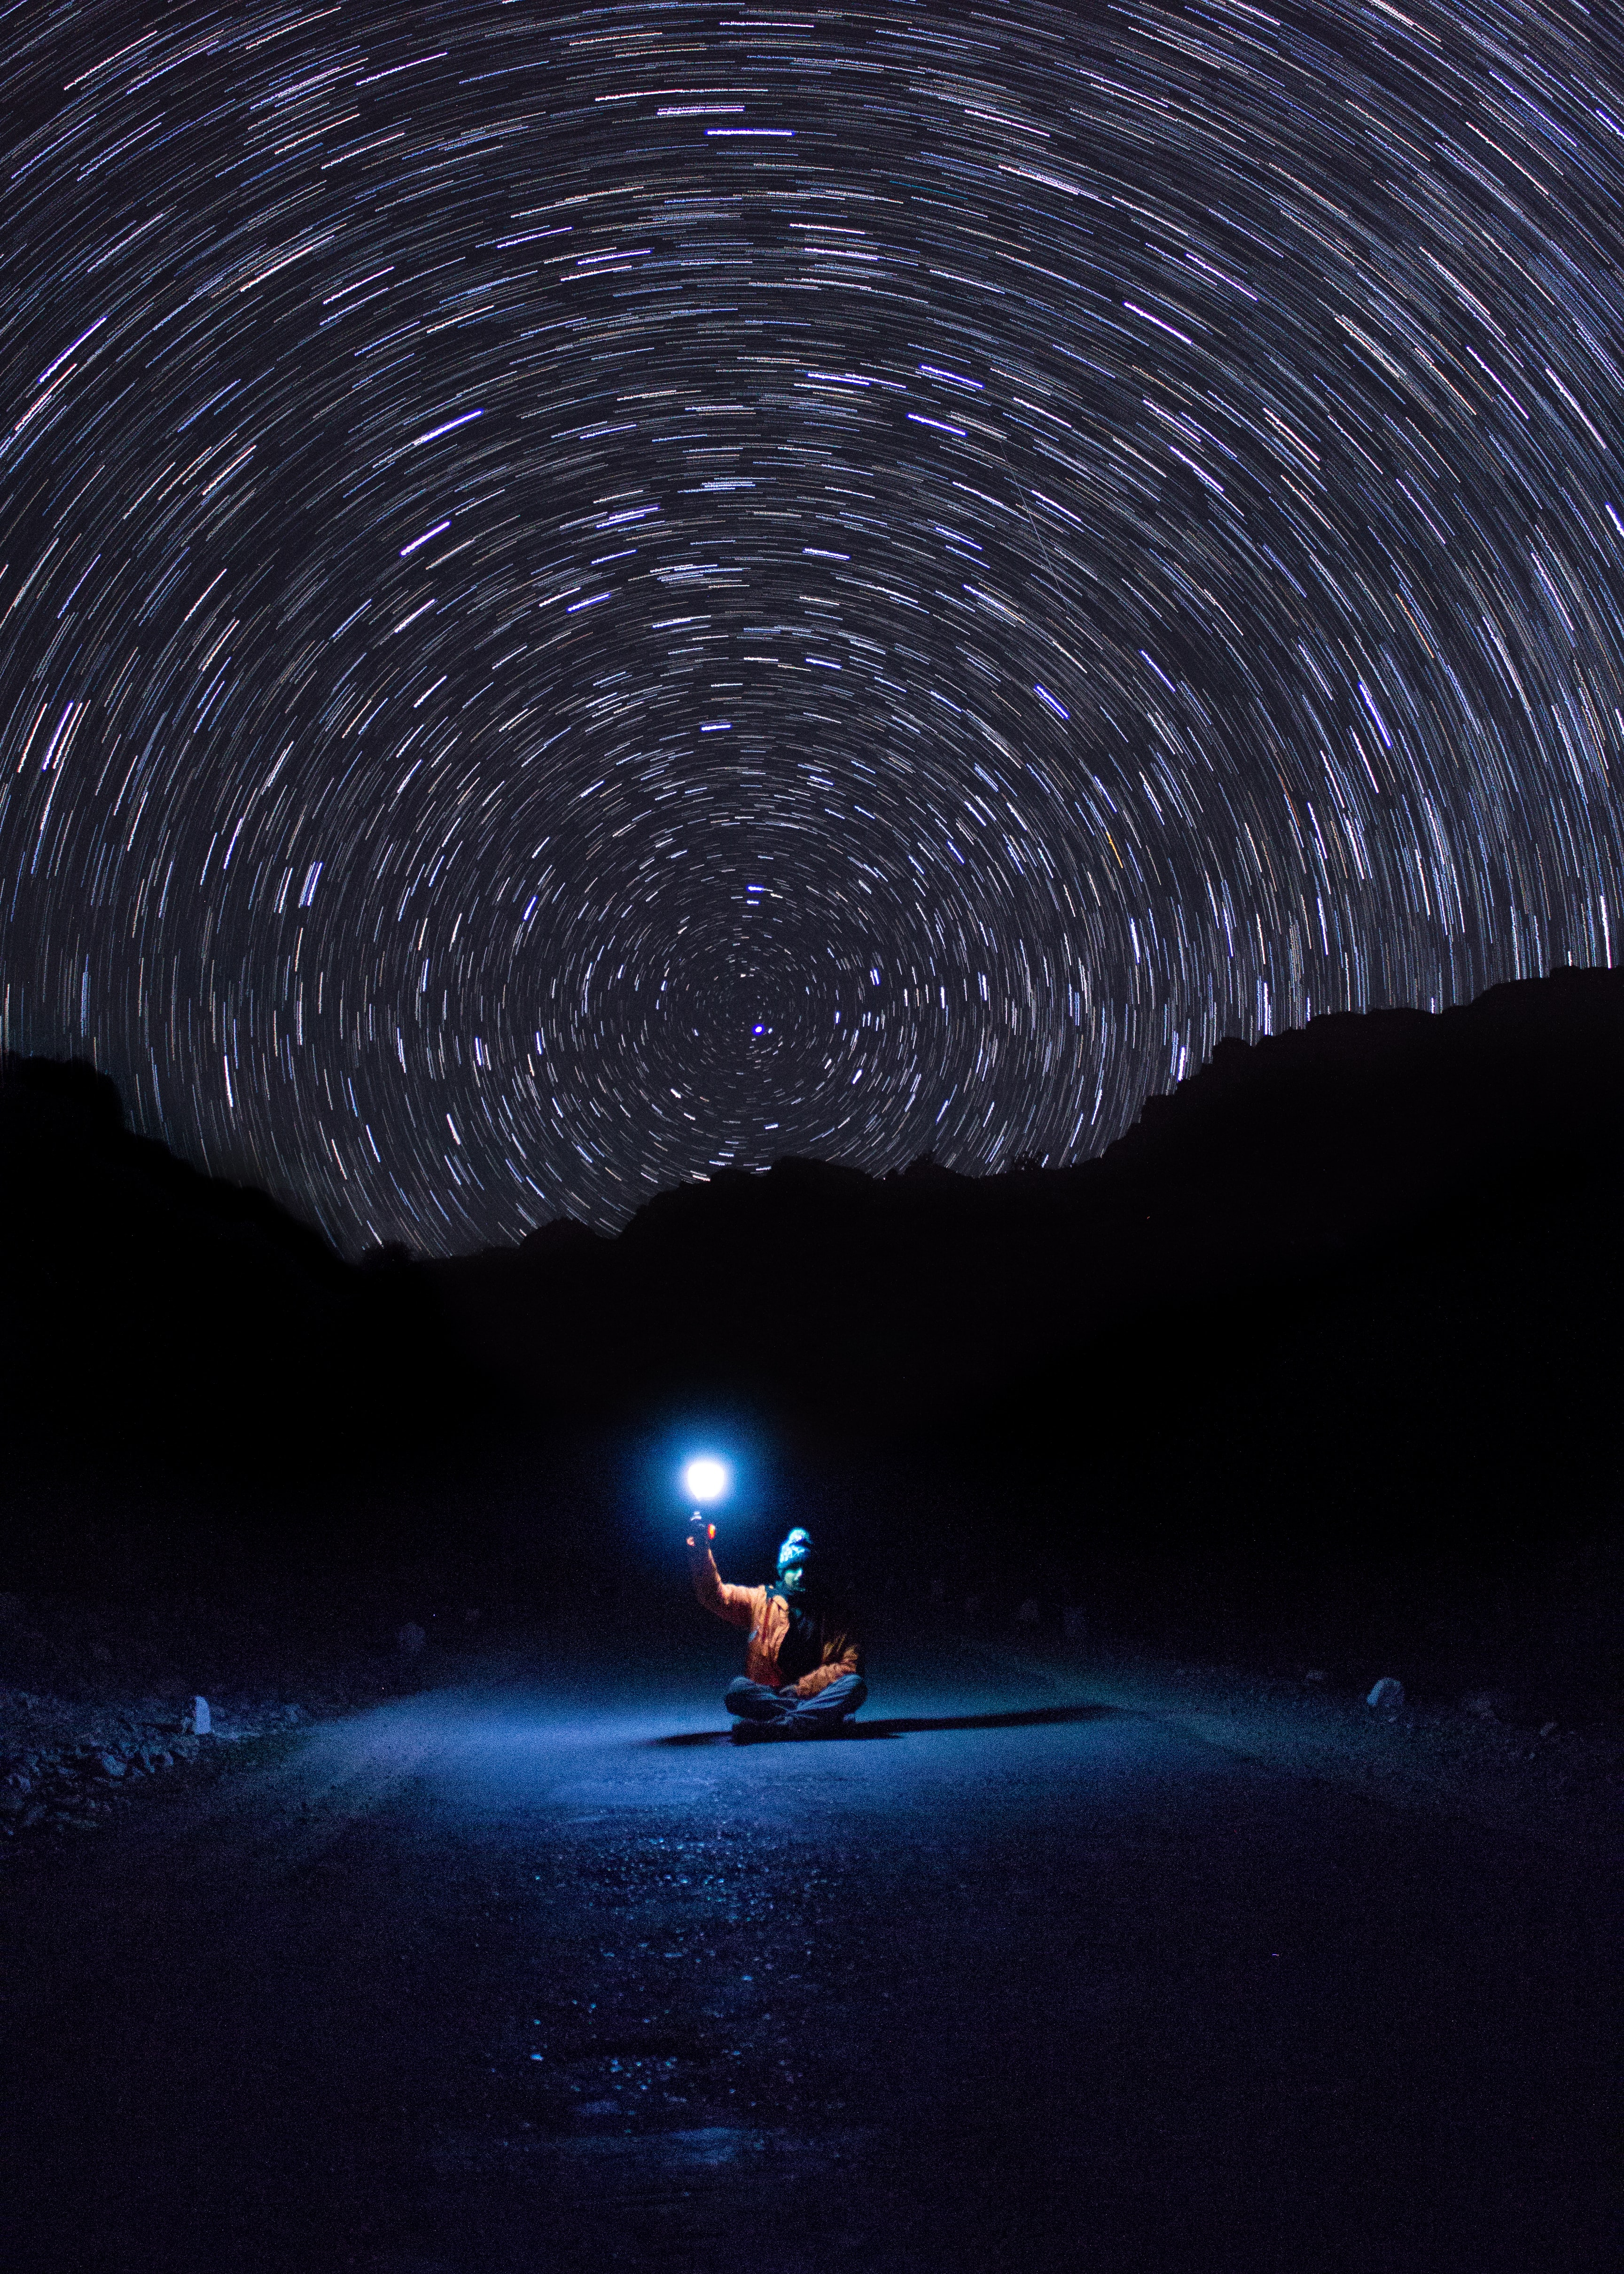 photo of person sitting on pave road holding light